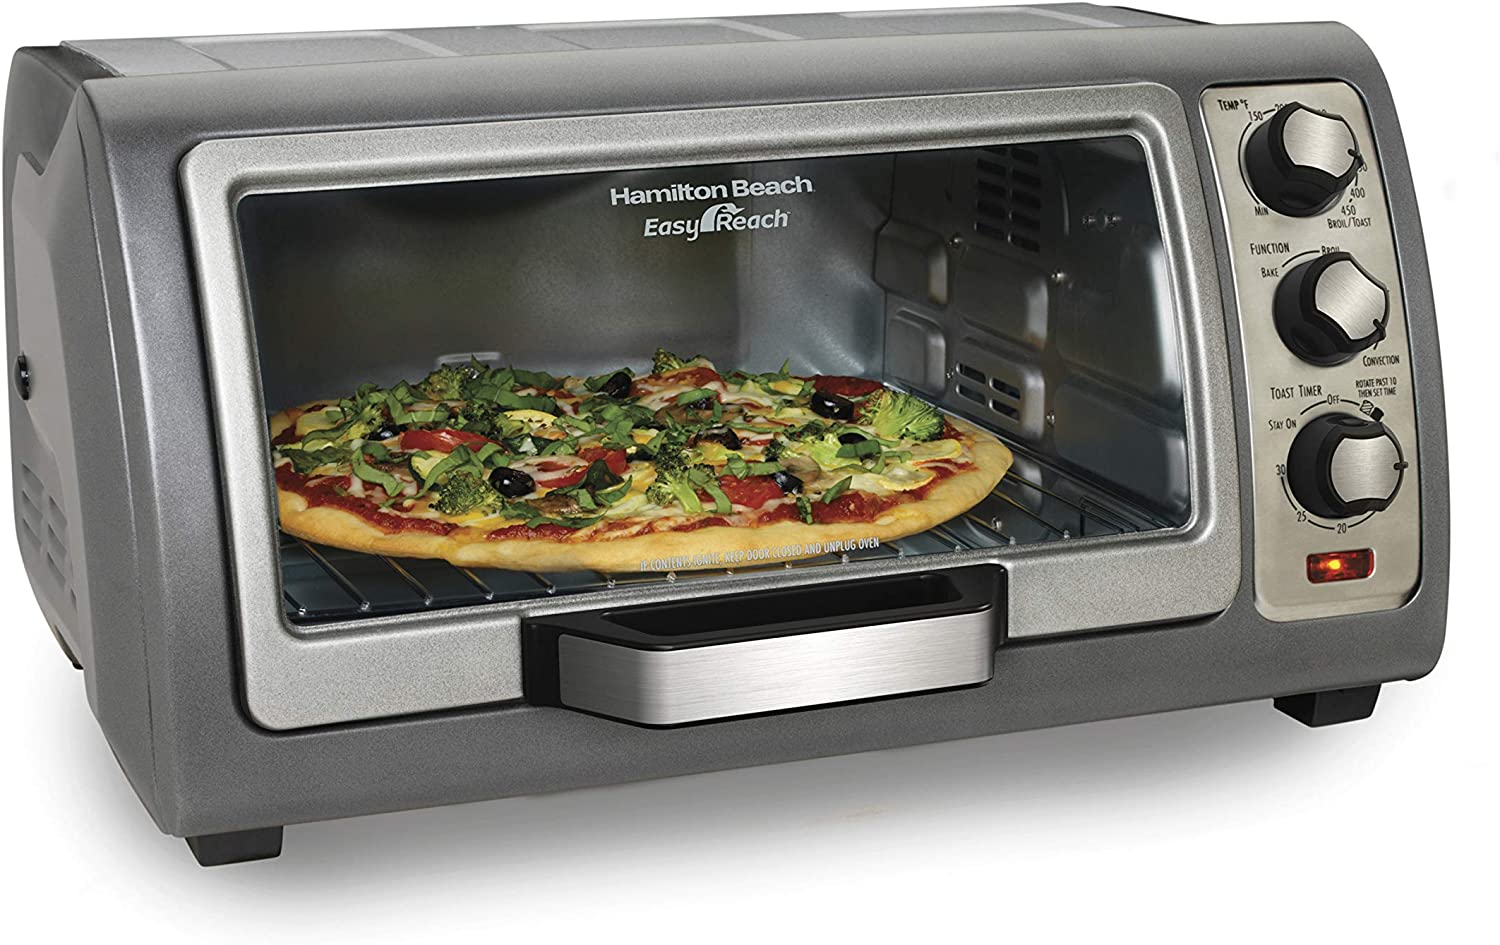 Hamilton Beach 31123D Easy Reach Roll-Top Door Countertop Toaster Oven